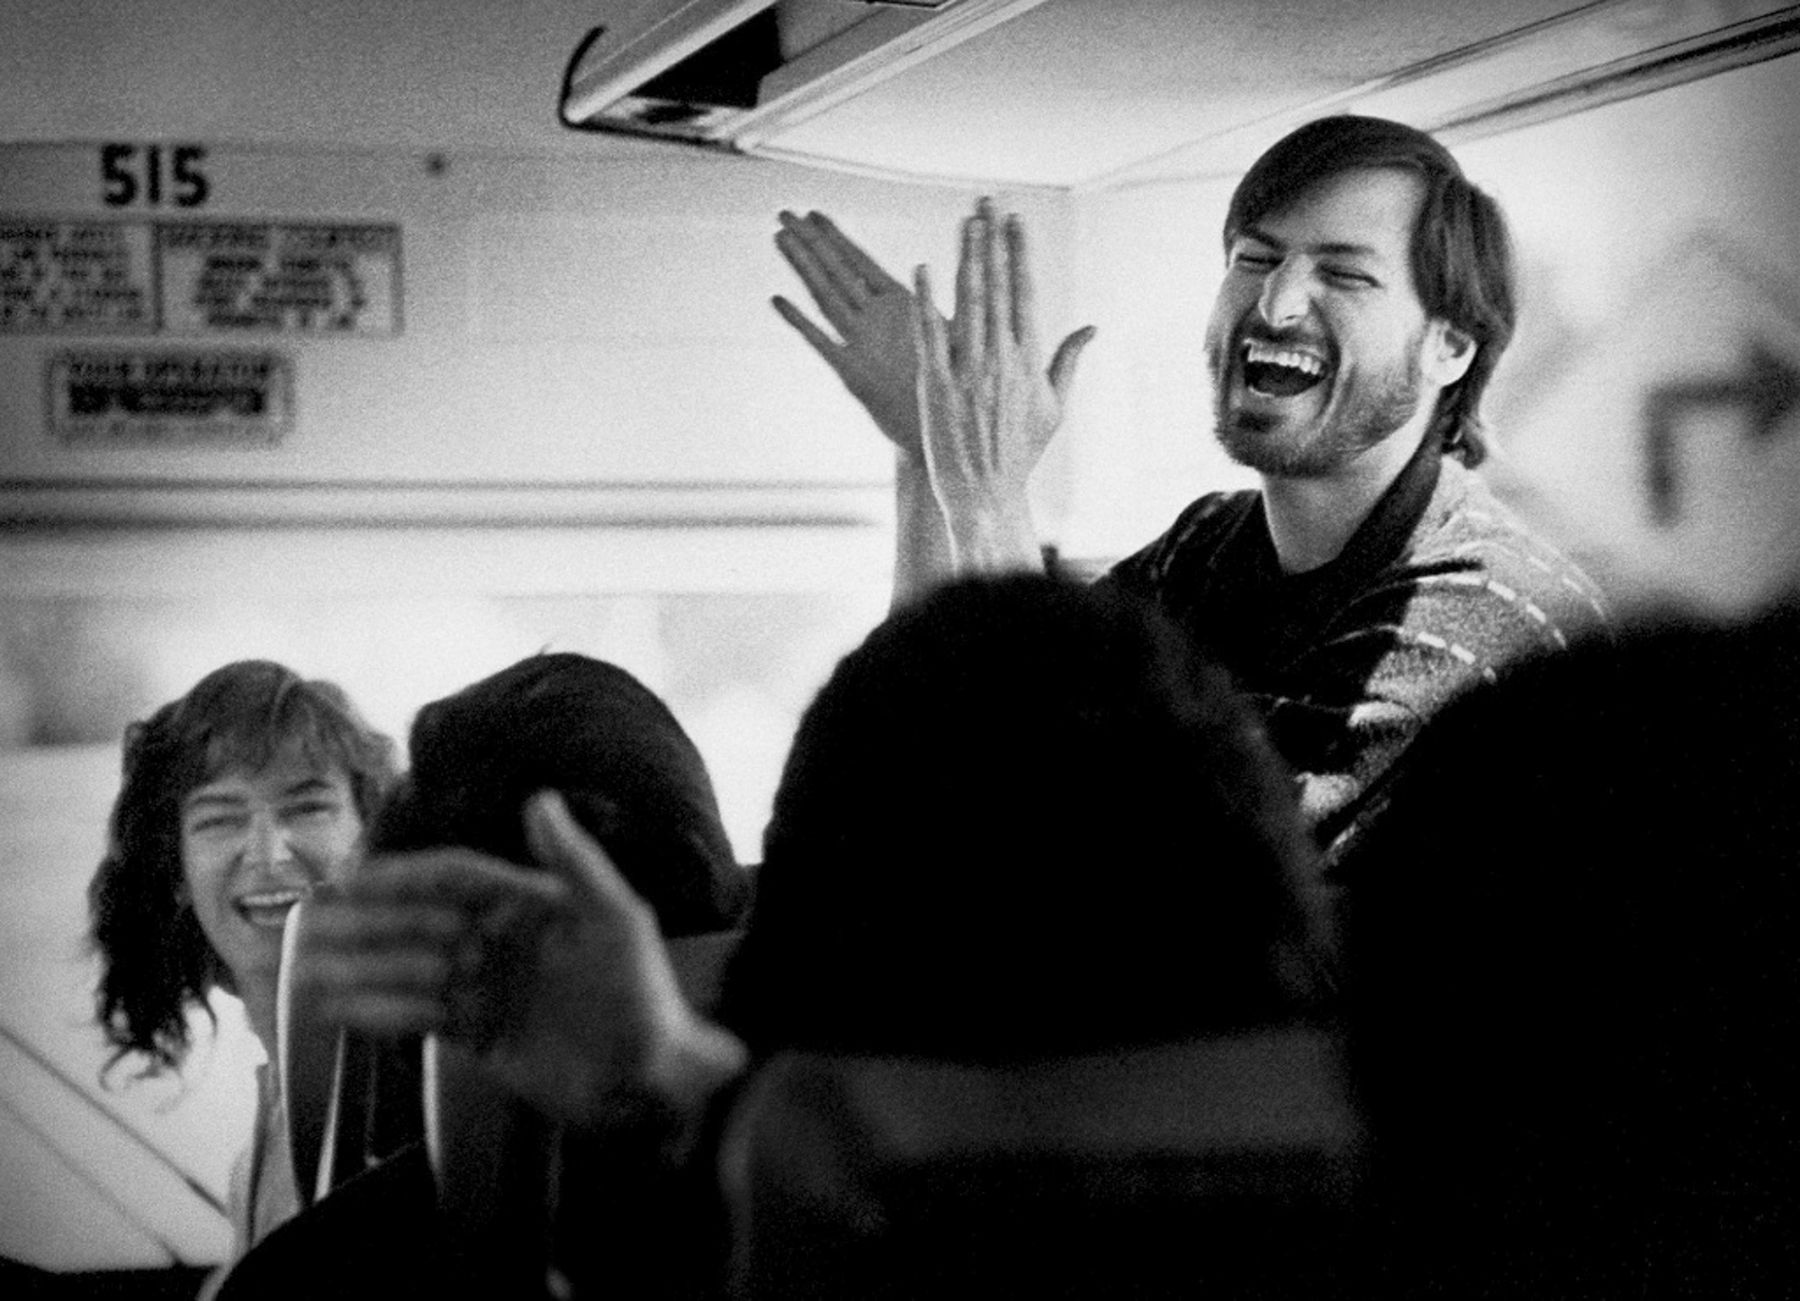 Steve Jobs Returning From a Visit to the New Factory by Doug Menuez